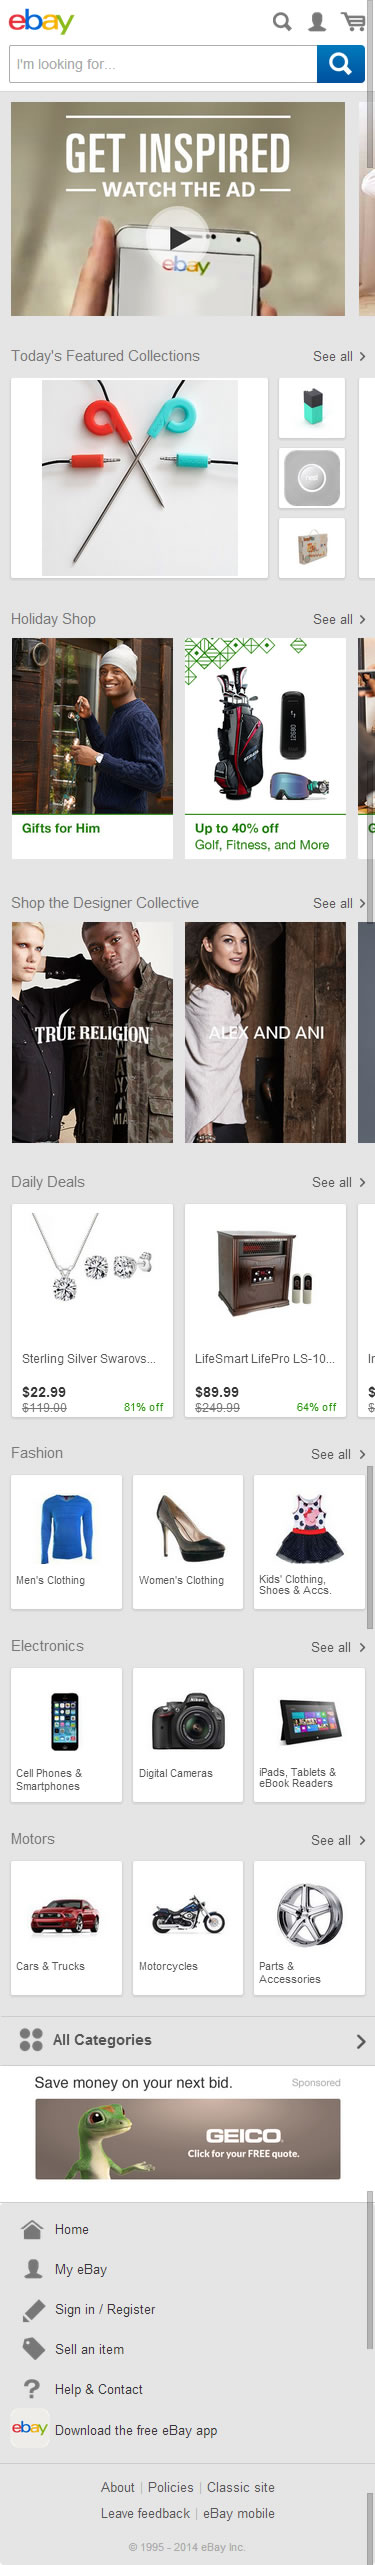 eBay ecommerce mobile home page design example